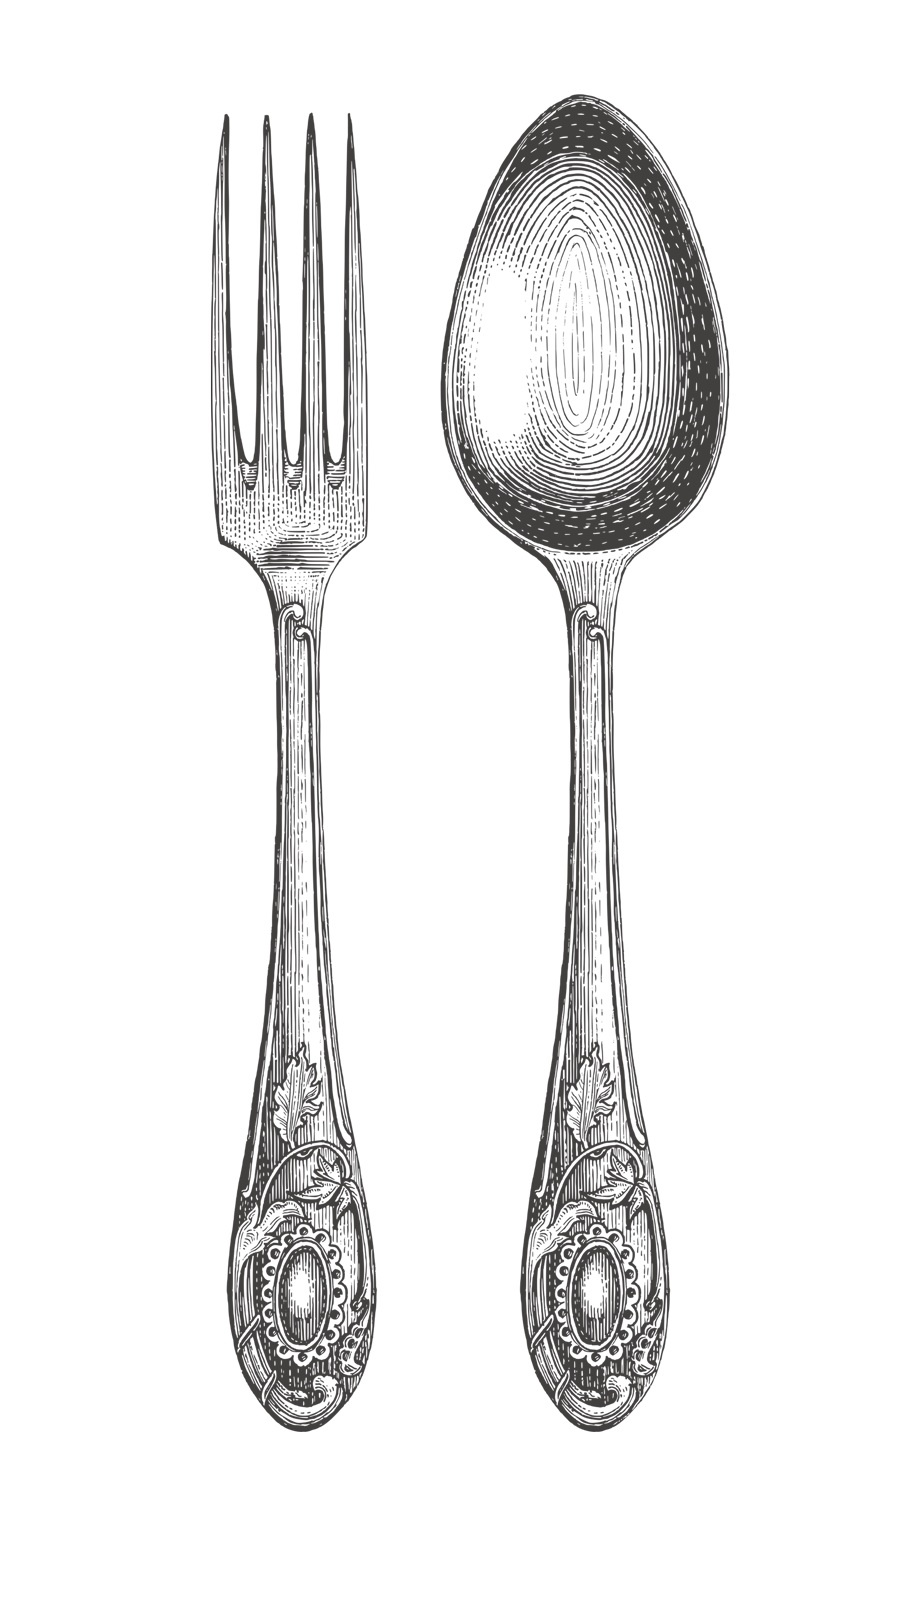 Fork-and-spoon-Copper-Brown-900px-Final.jpg